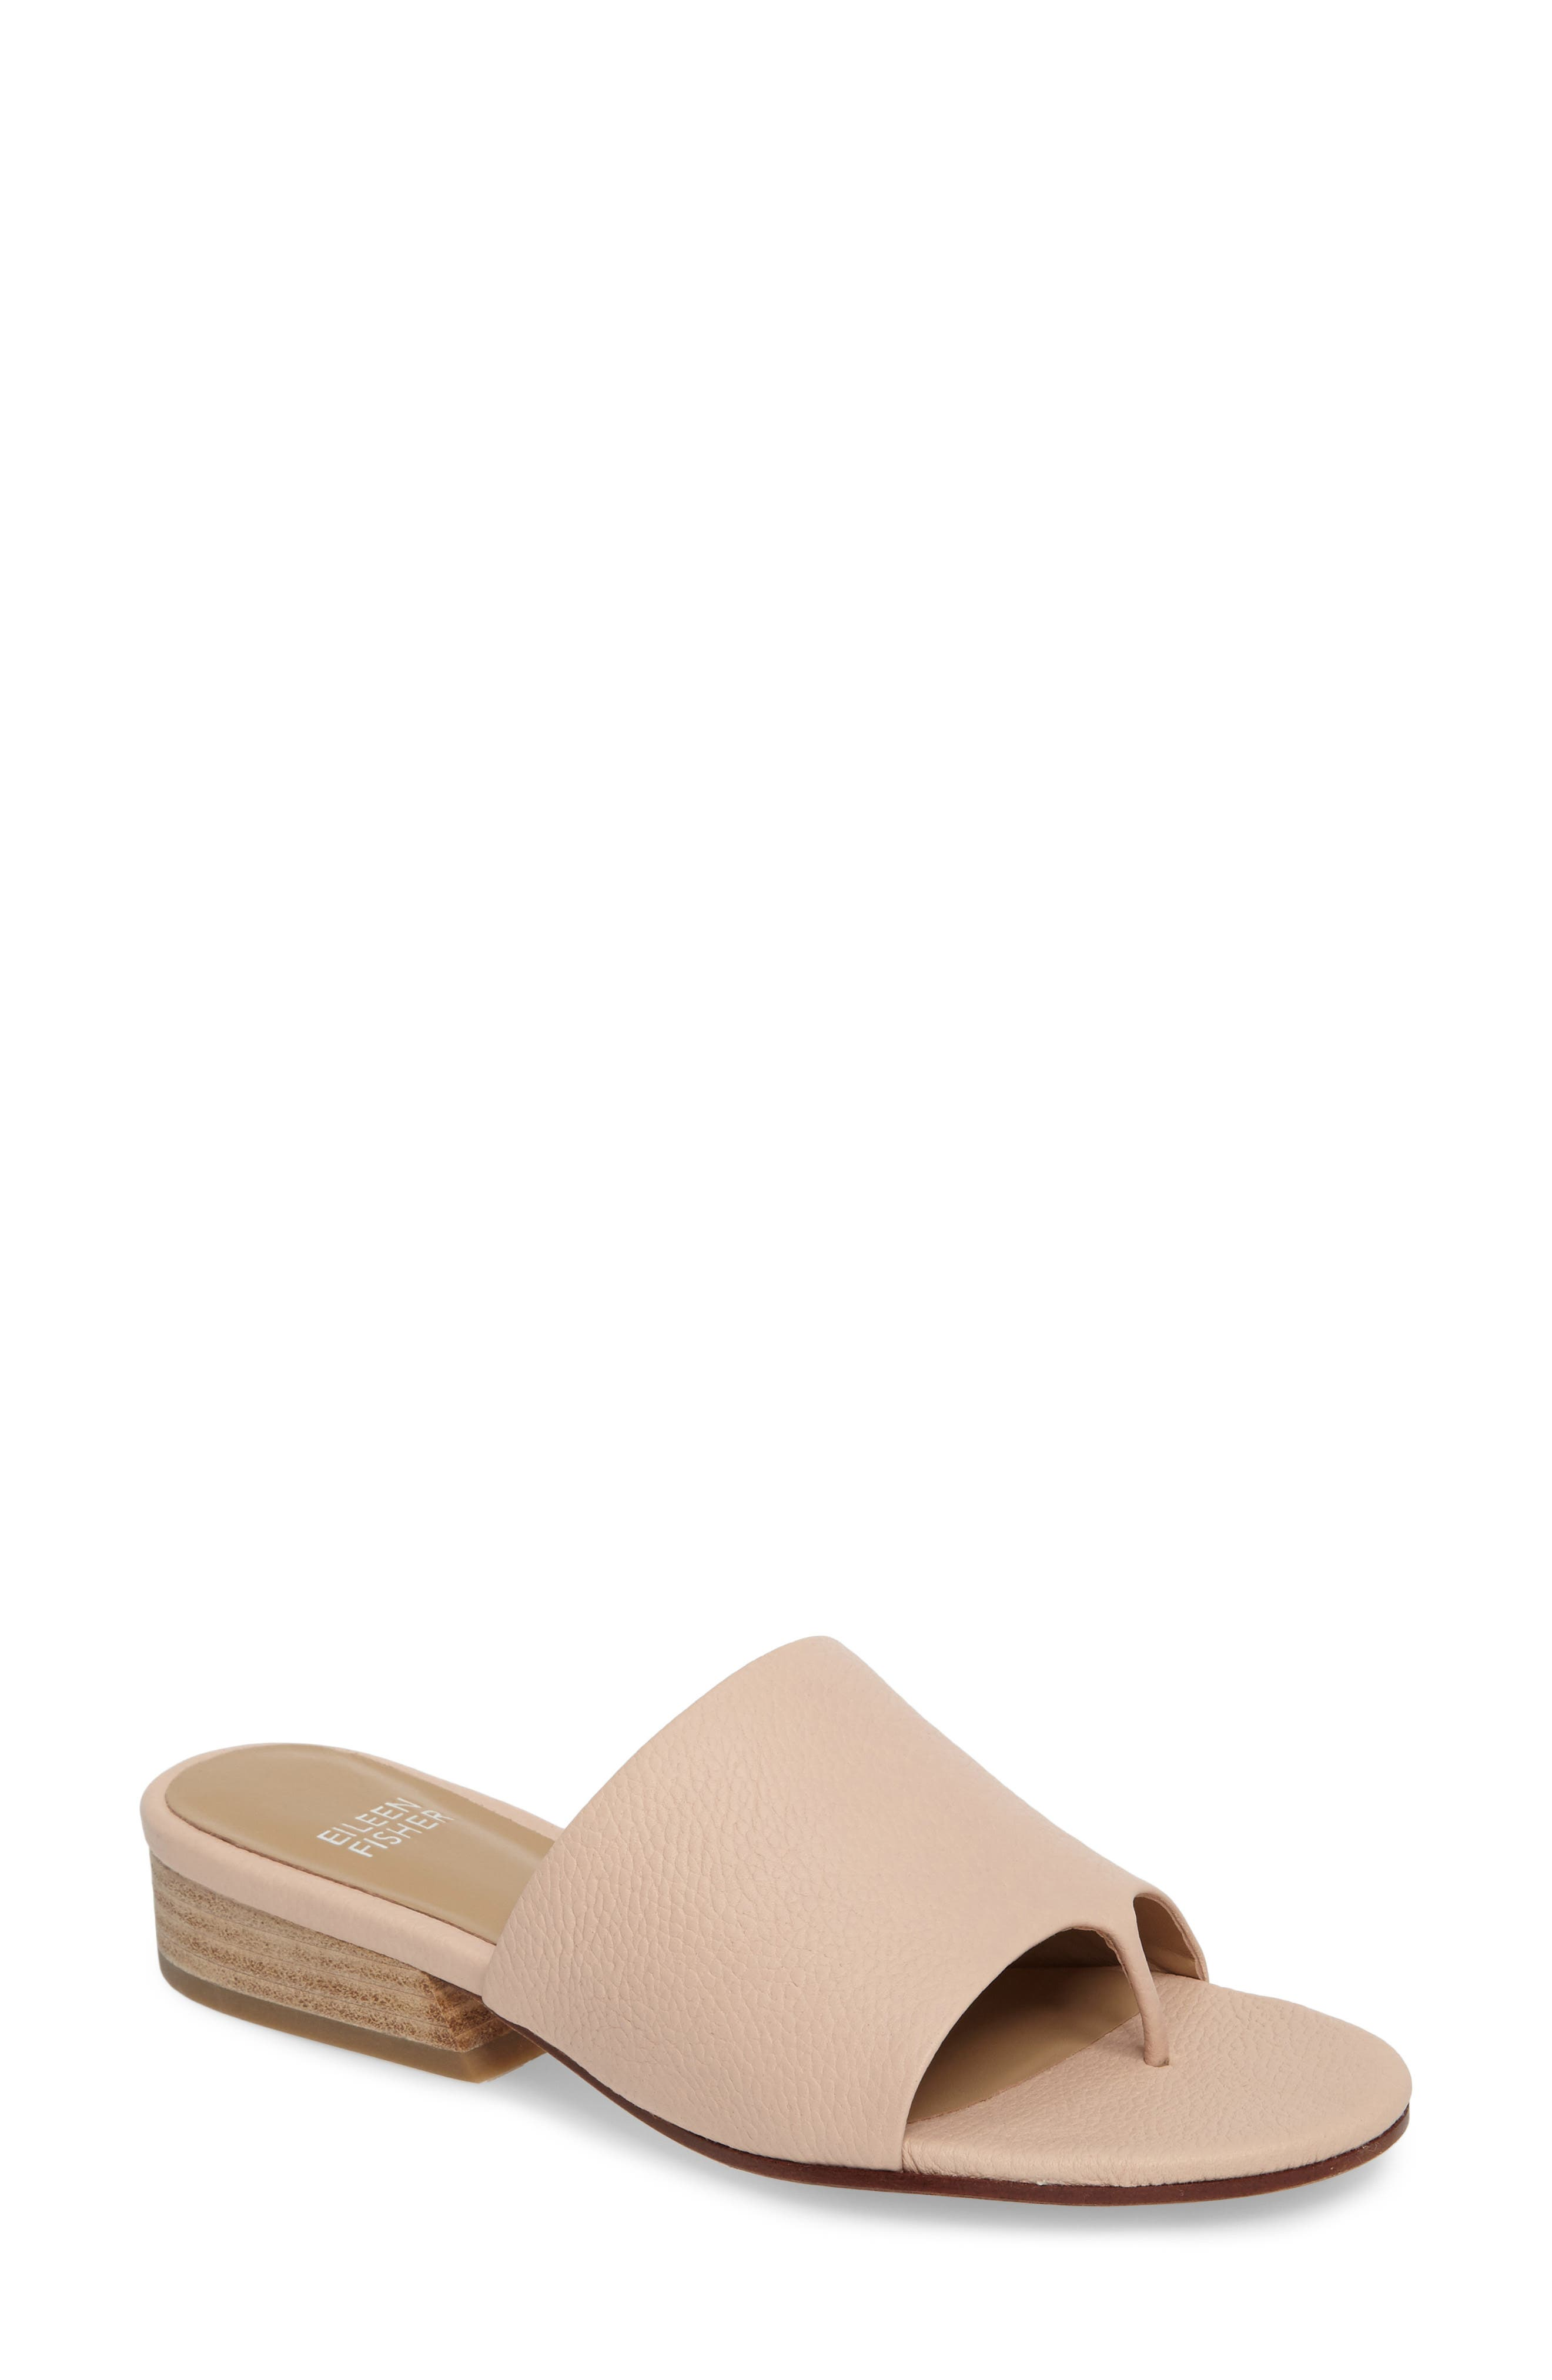 Eileen Fisher Beal Slide Sandal (Women)